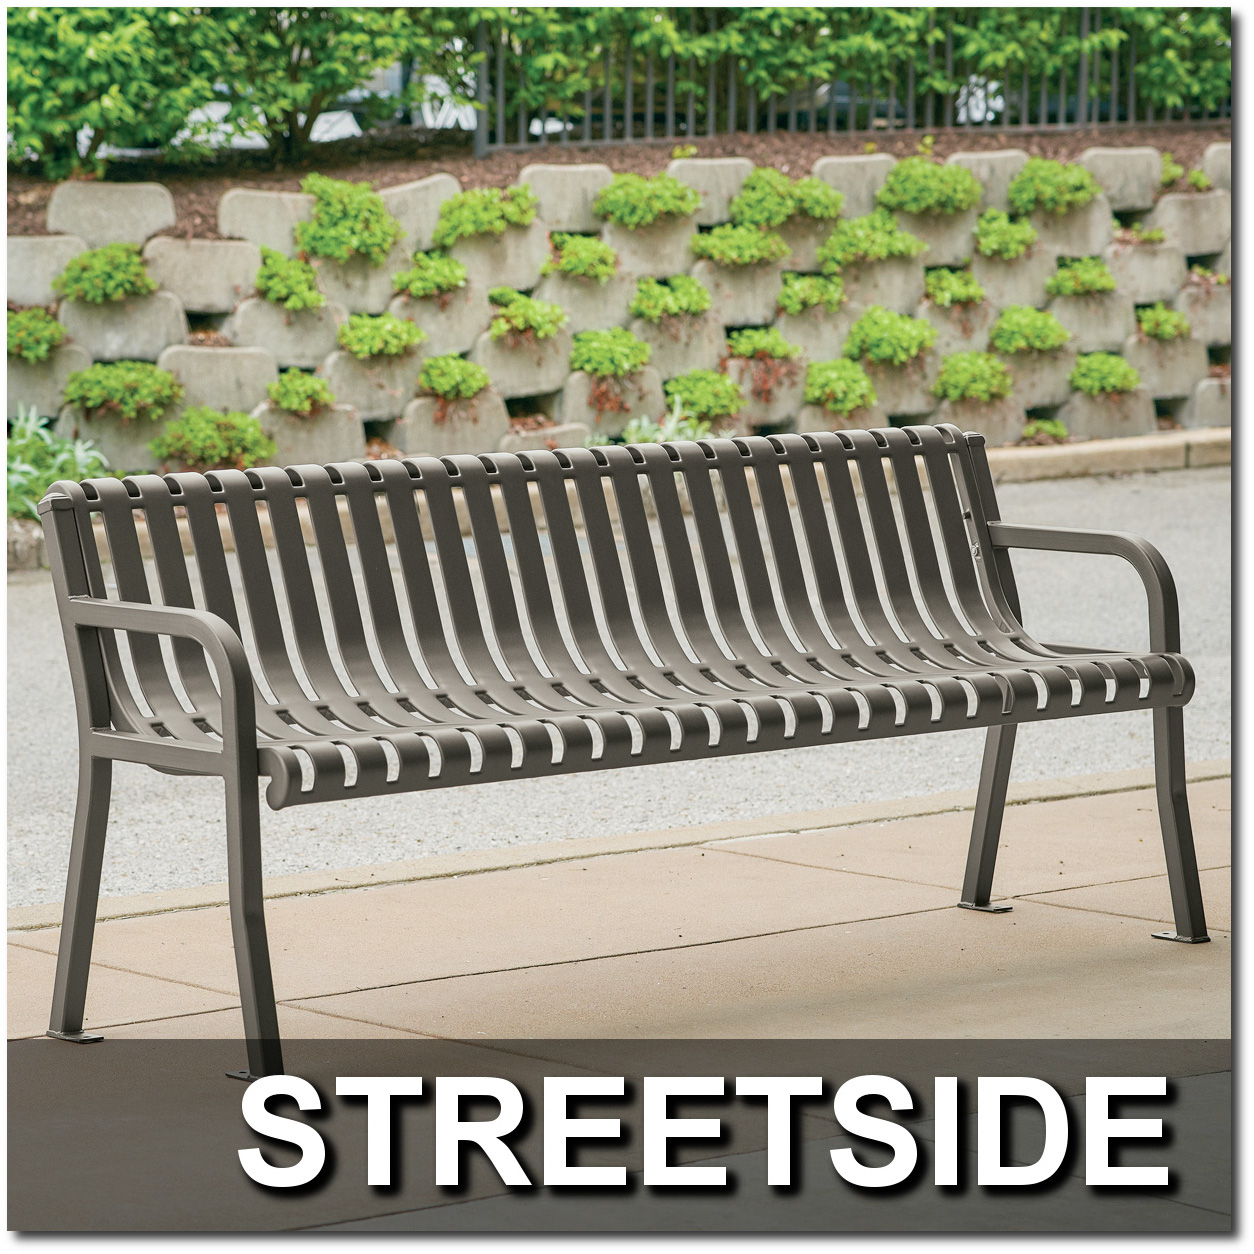 Streetside Collection Park Benches